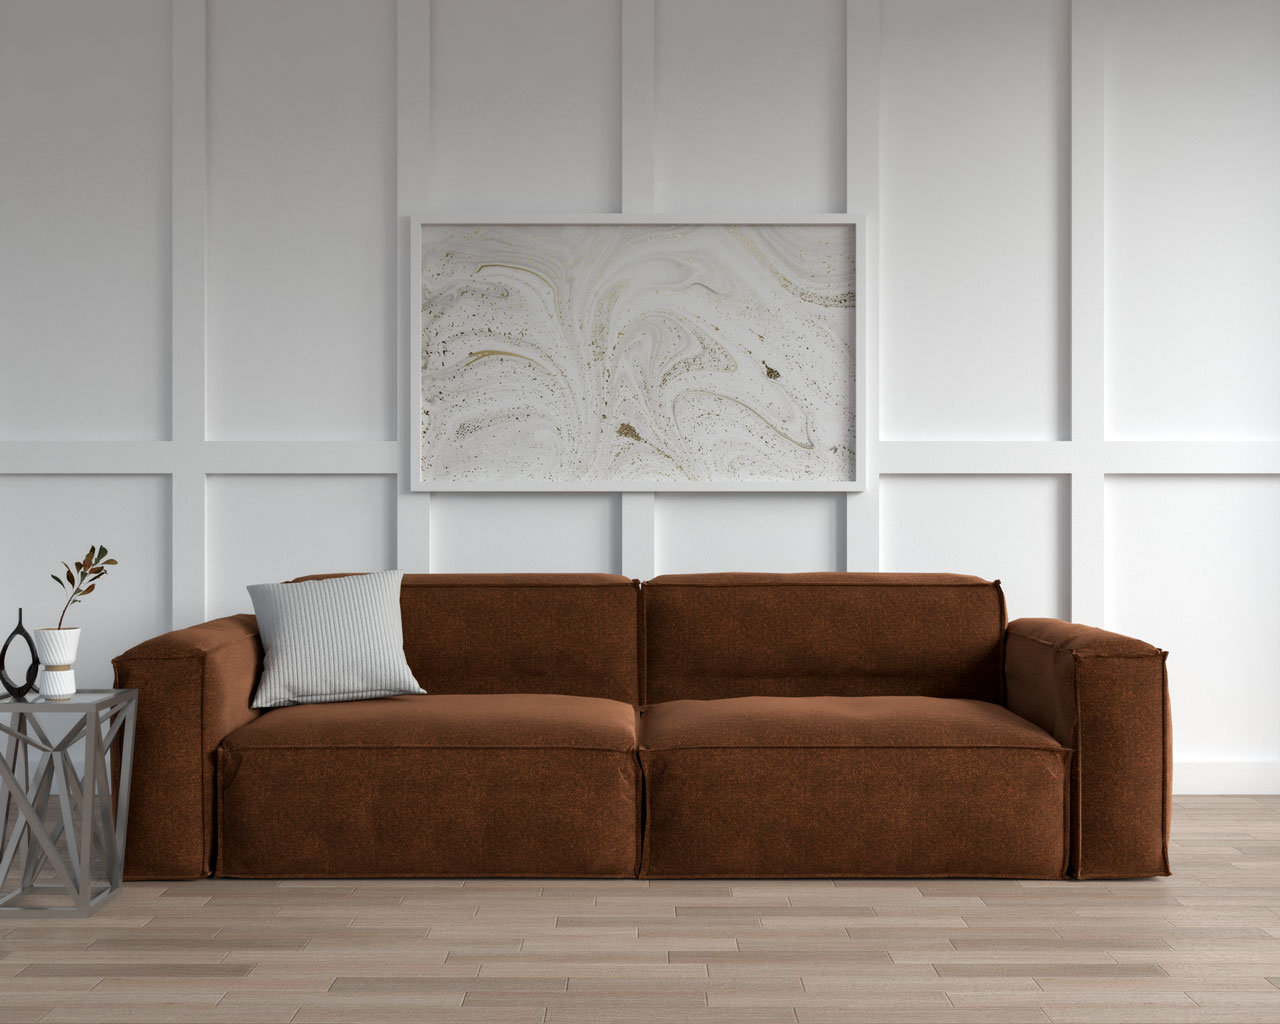 Brown couch with gray throw pillow